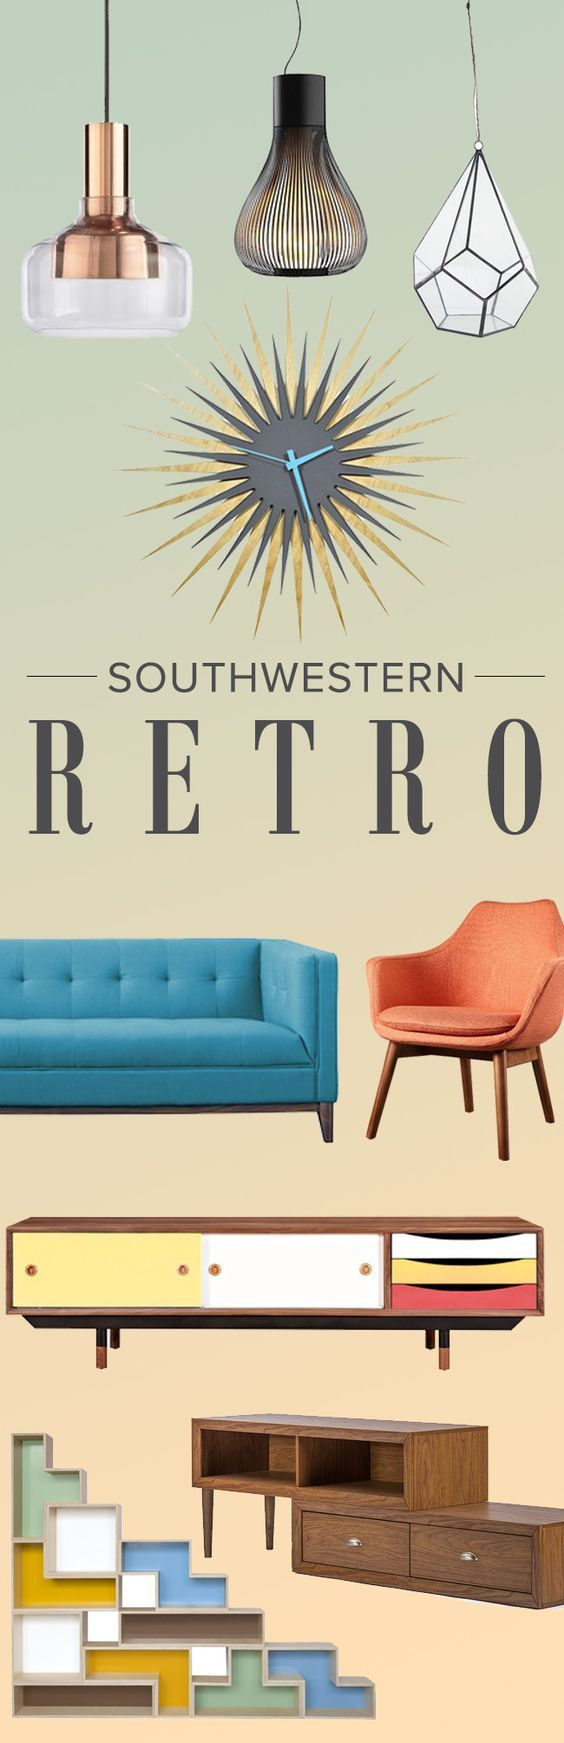 Dreaming of your favorite decade? Step back to the '70s style showdown: Southwest meets mid-century mod. Find all of your Southwestern Retro essentials at AllModern.